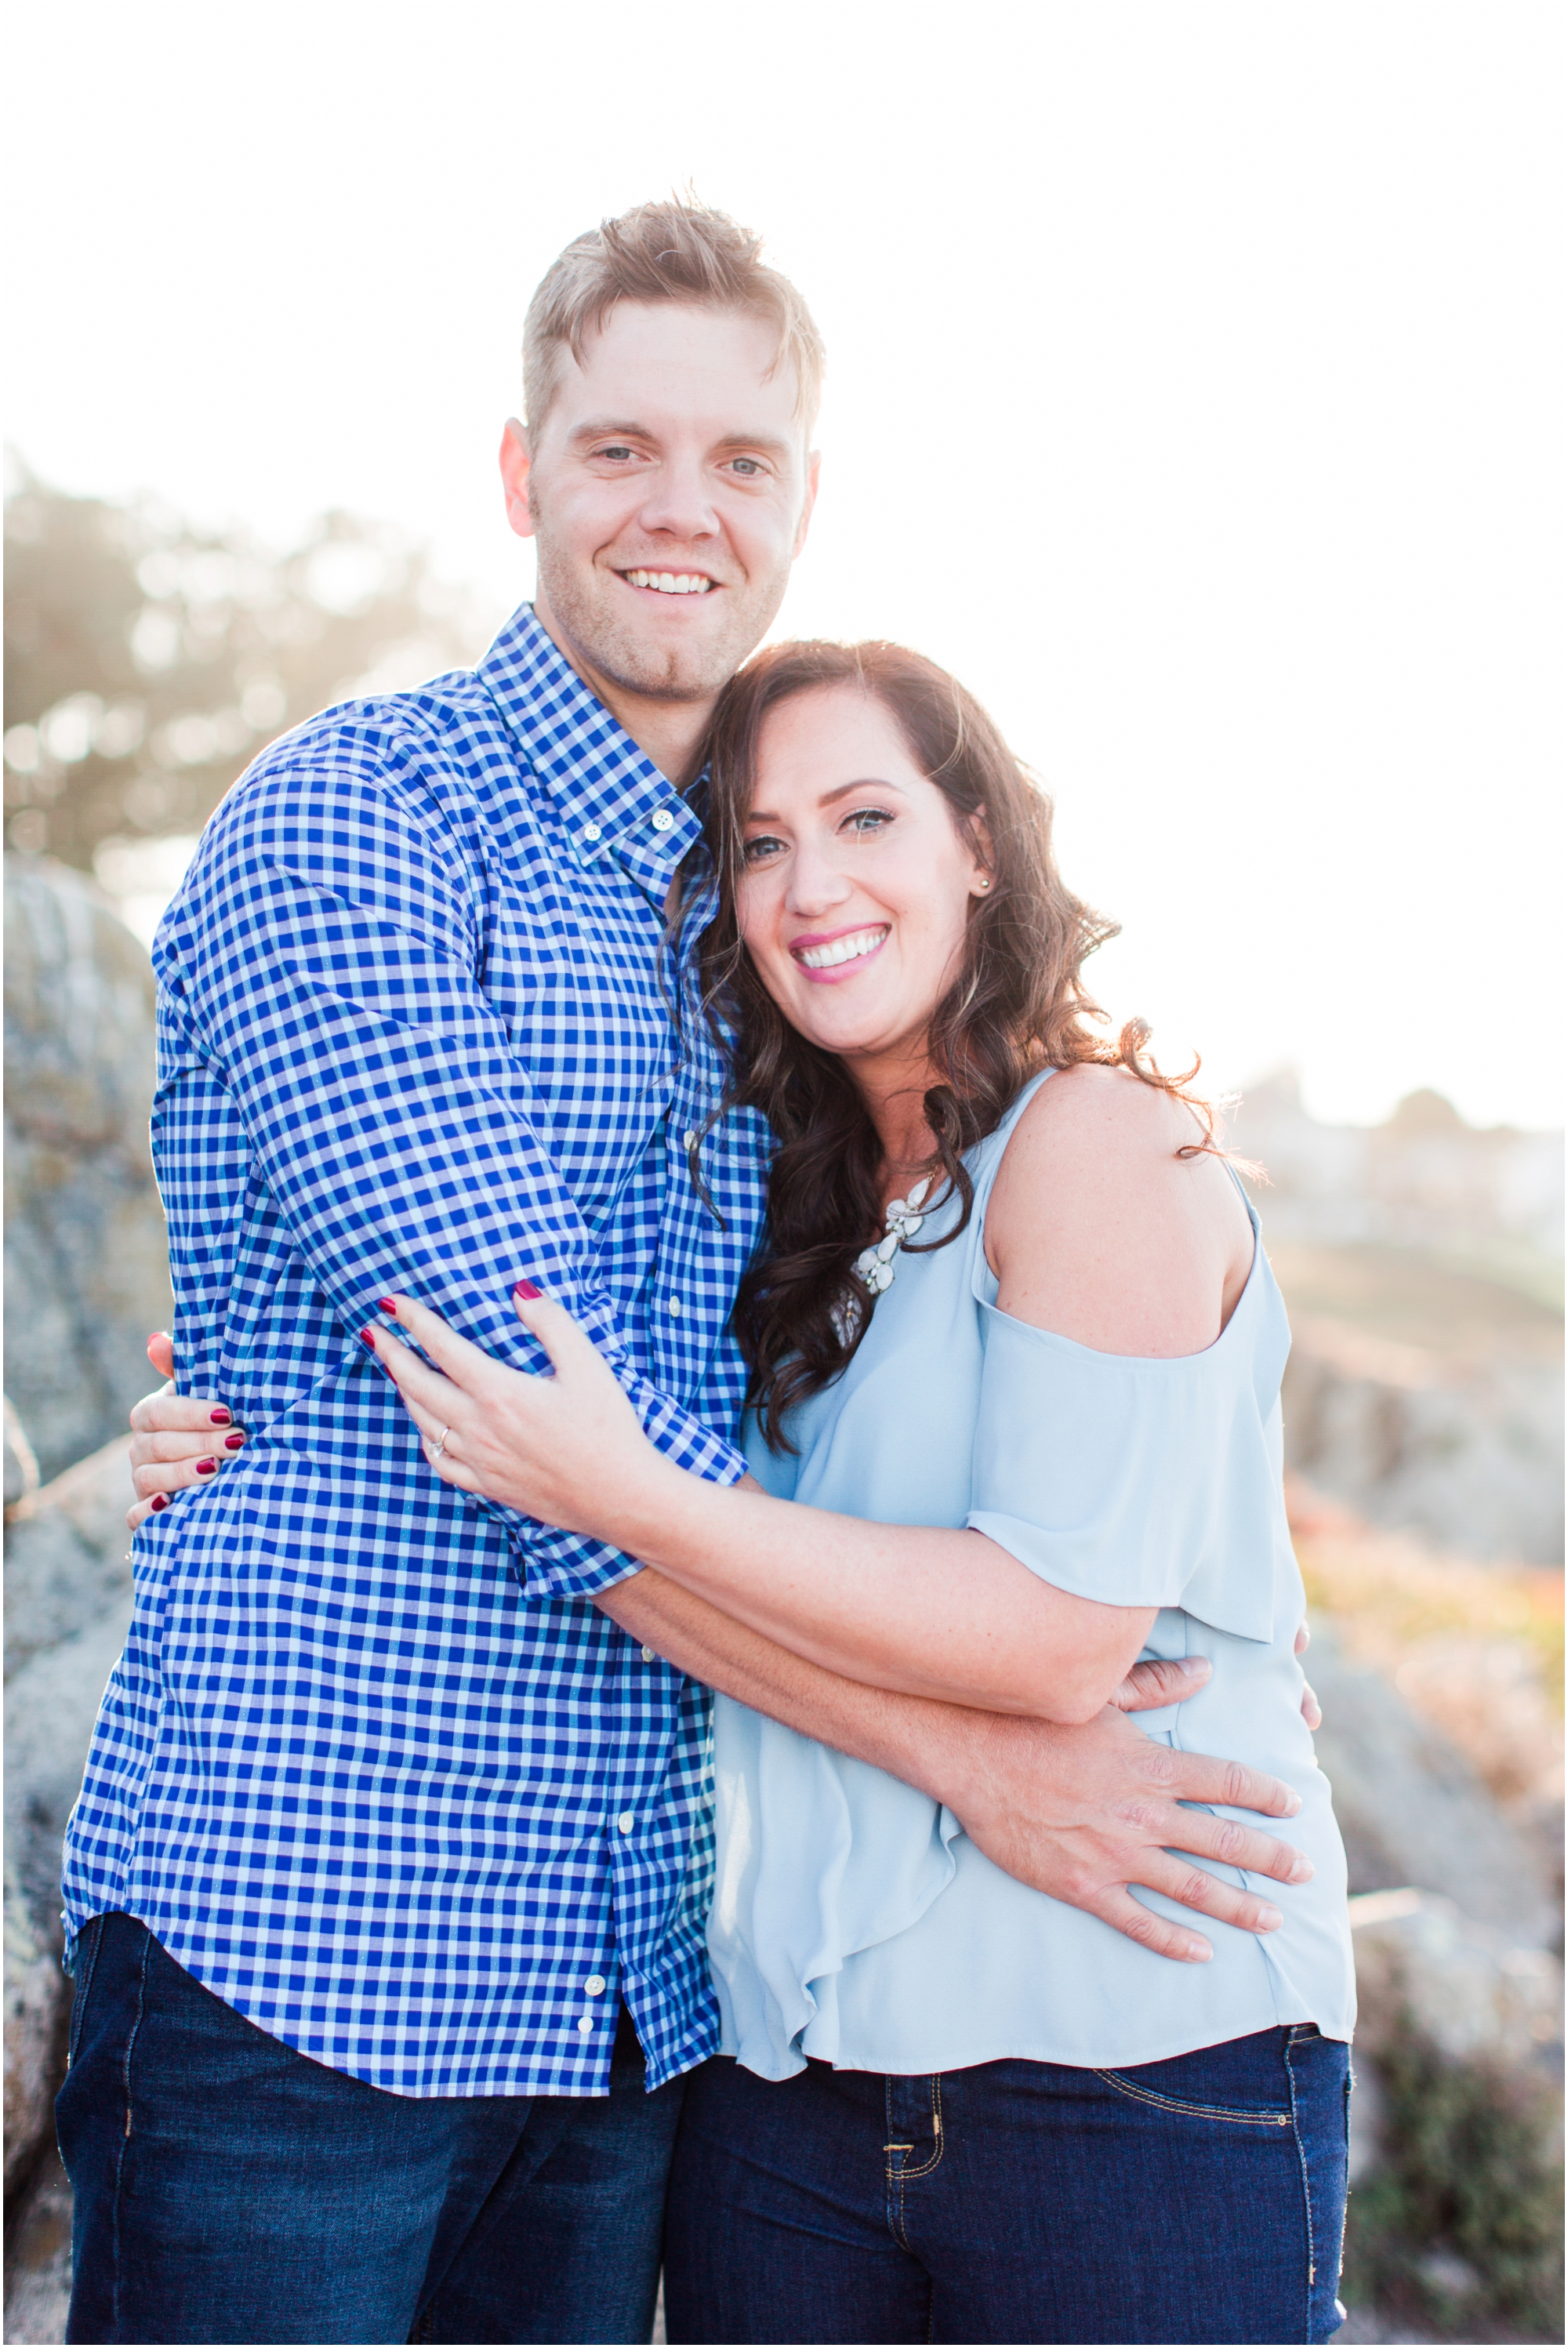 Berwick Park Monterey engagement pictures by Briana Calderon Photography_2383.jpg